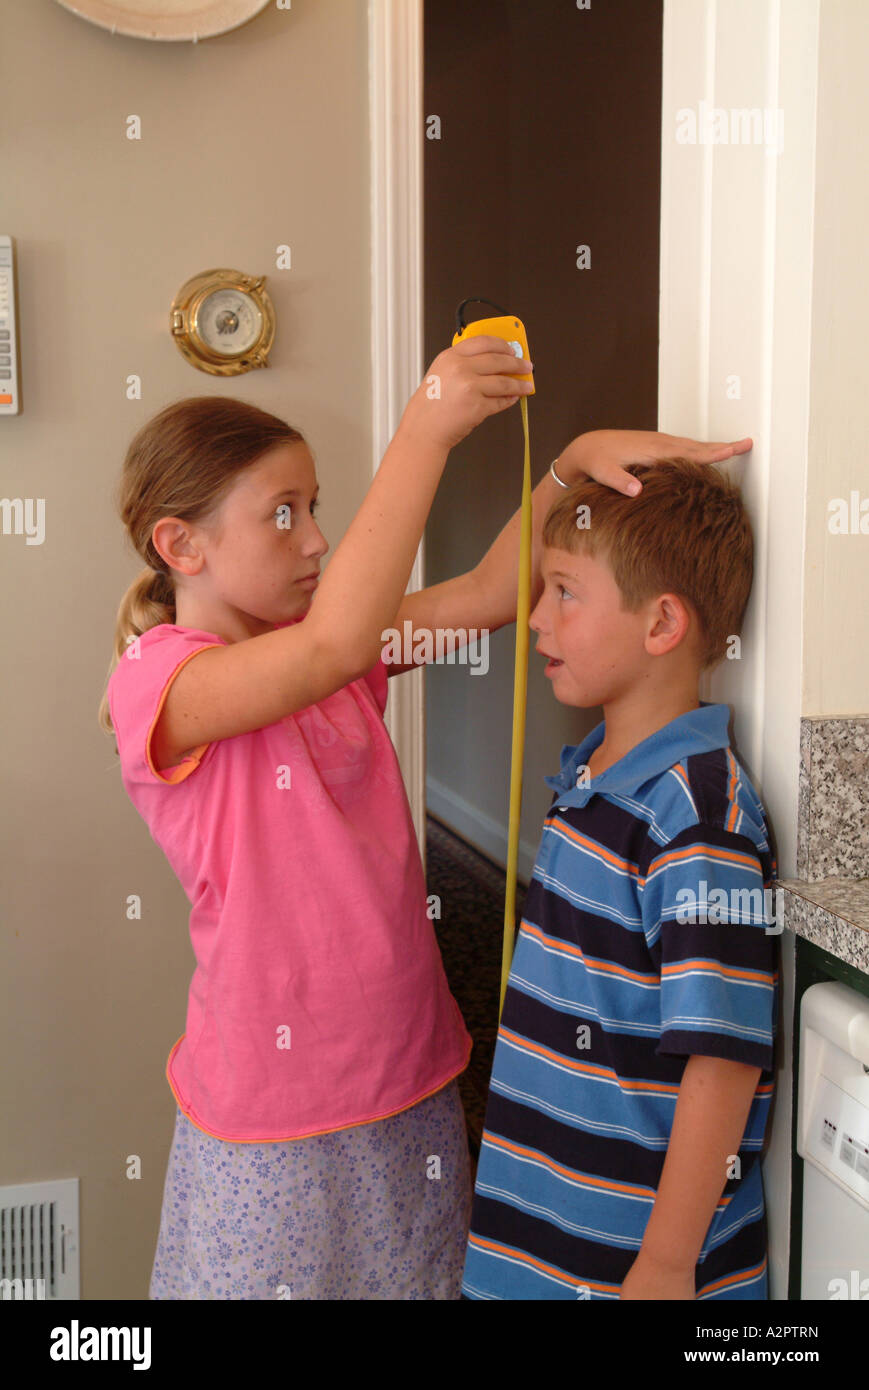 10-year-old-girl-uses-a-measuring-tape-to-see-how-tall-her-7-year-A2PTRN.jpg